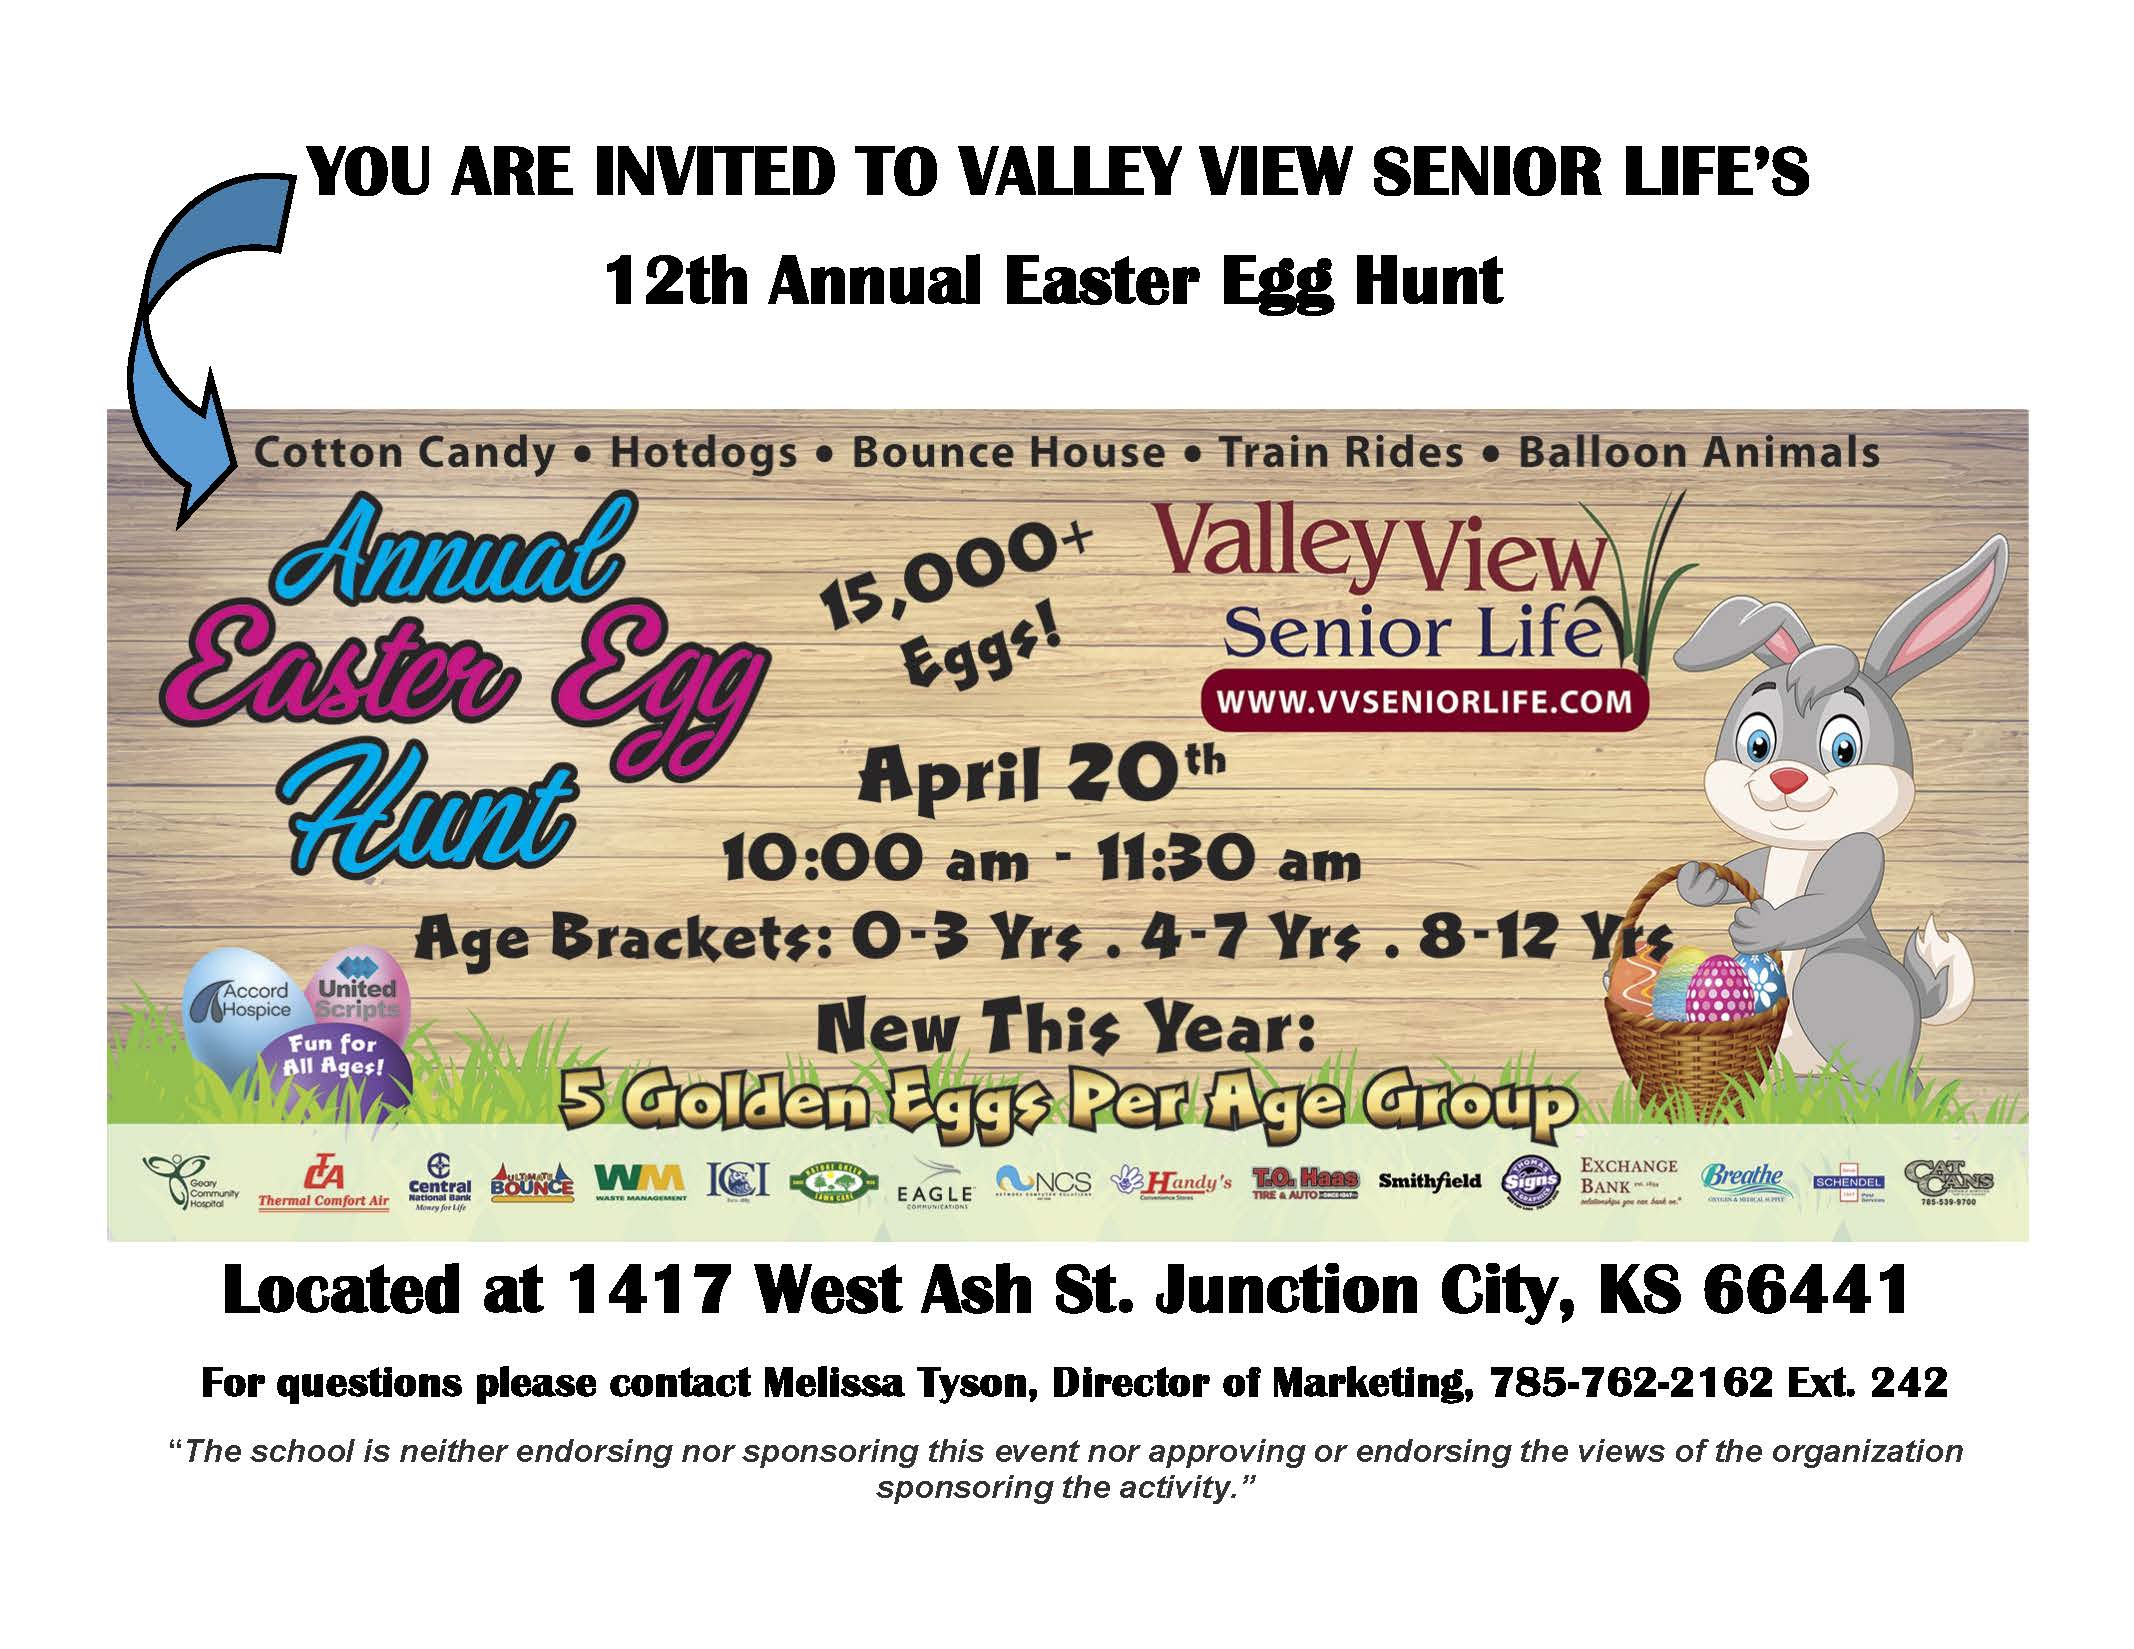 Picture of the 12th Annual Easter Egg Hunt flyer